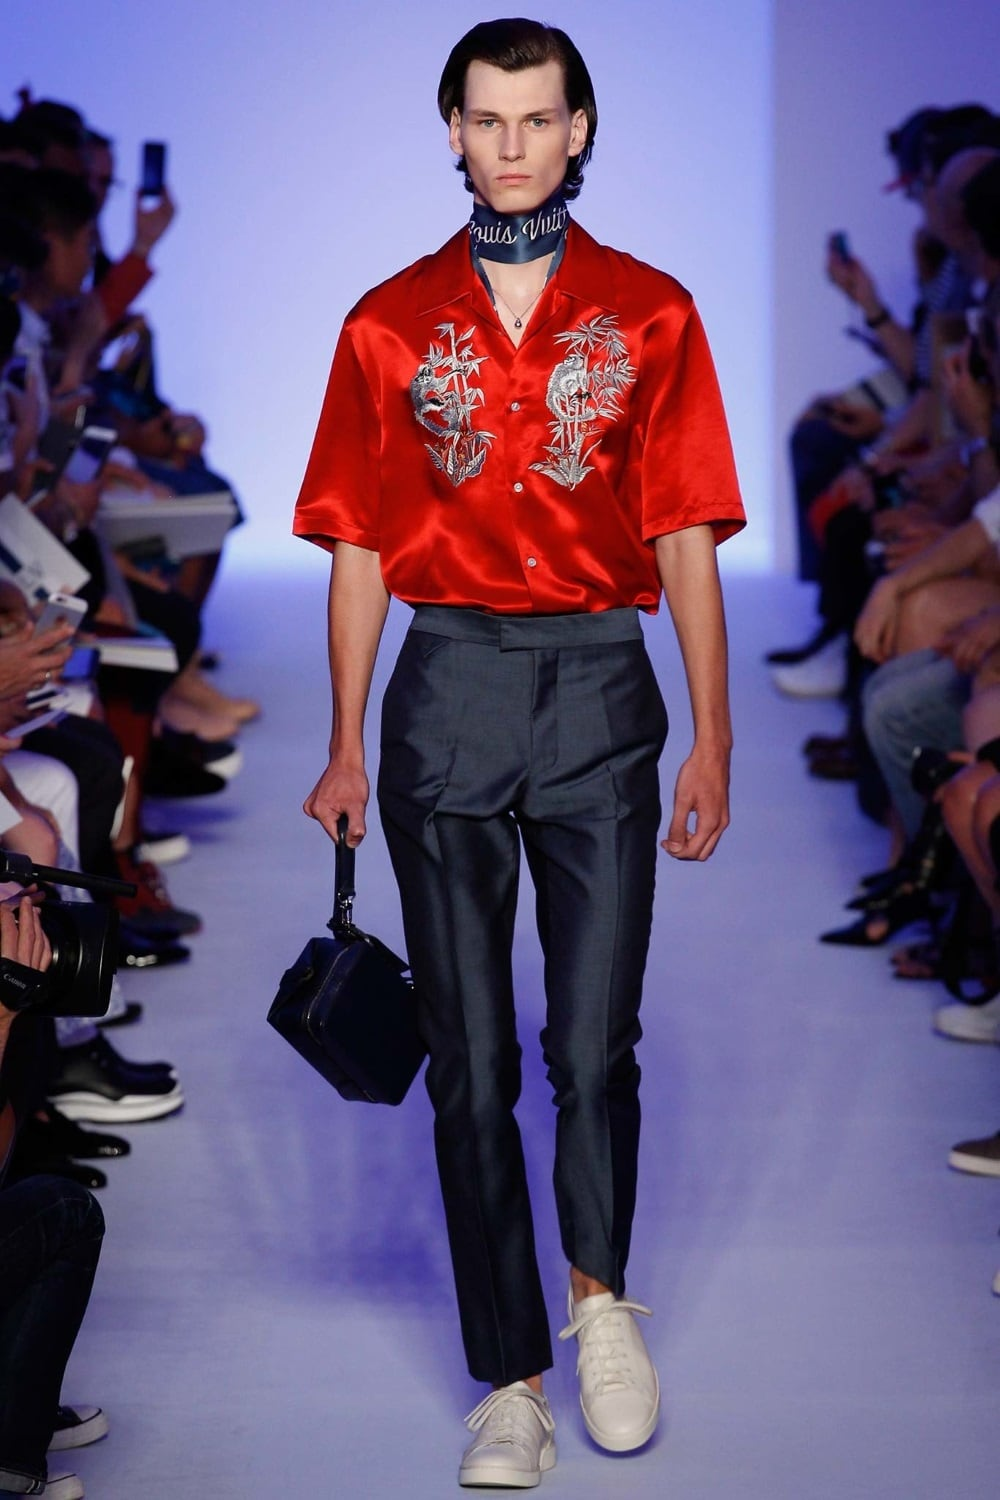 Silk_Shirt_4_-_Louis_Vuitton